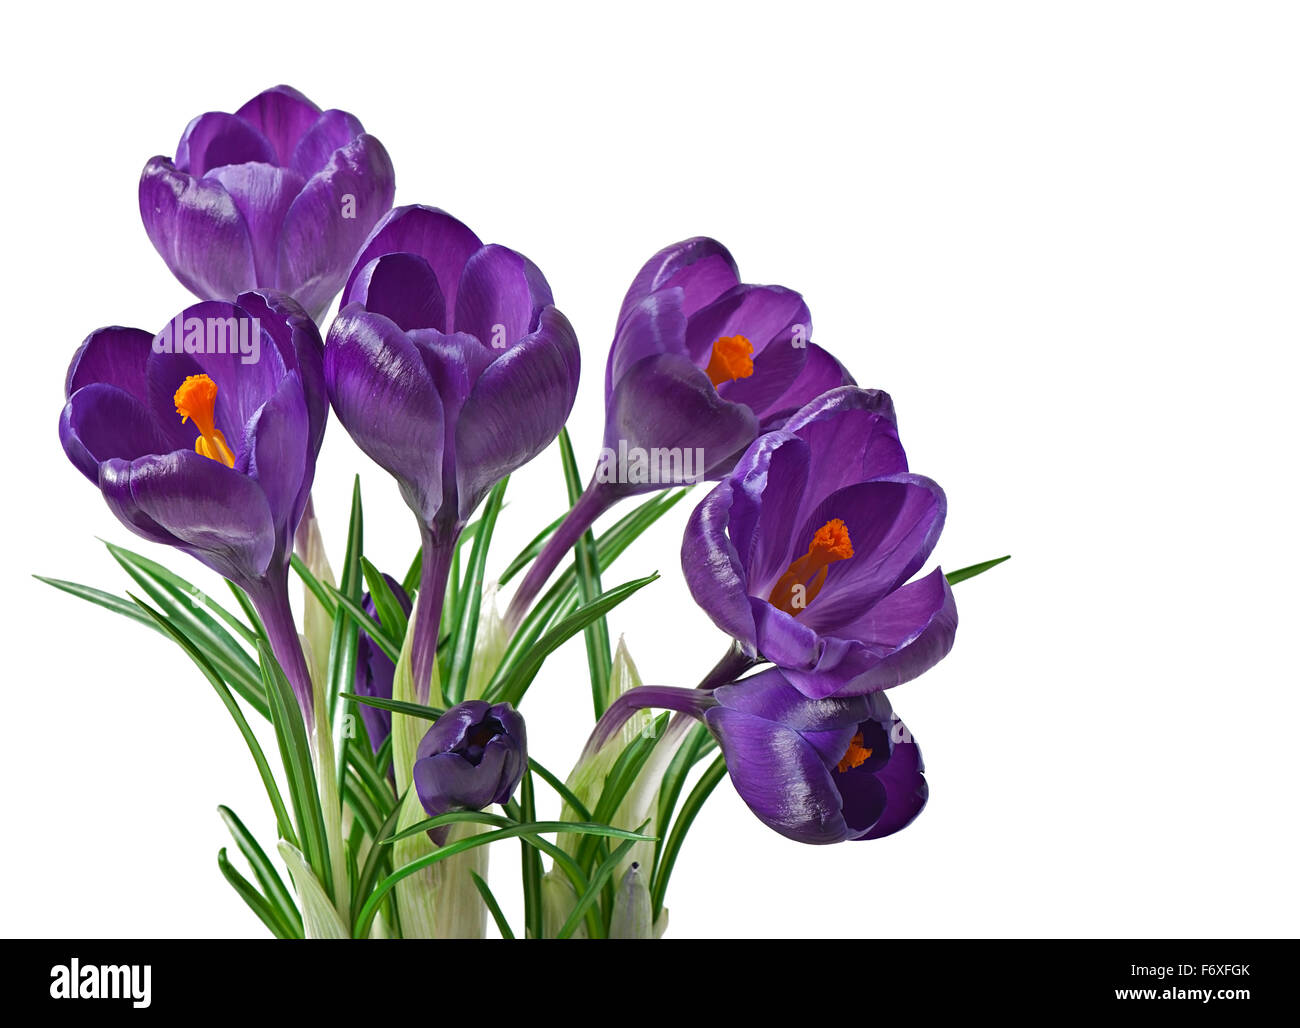 Spring bouquet of purple crocuses isolated on white background - Stock Image